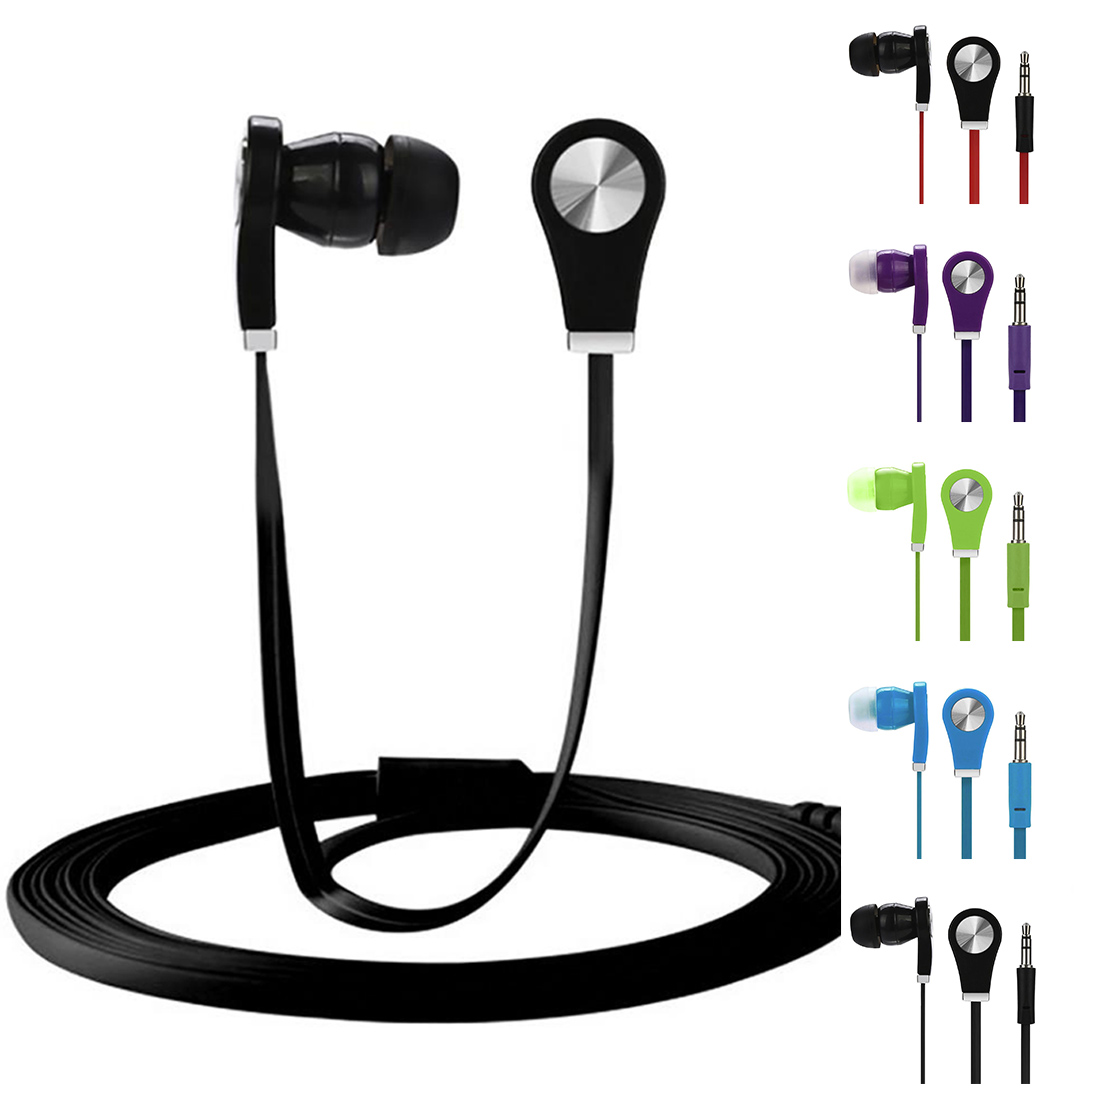 Mobile Phone Accessories Cheap In-ear Noodle Earphone Colorful Headset Hifi Earbuds Bass EarphonesHigh Quality Ear Phones image